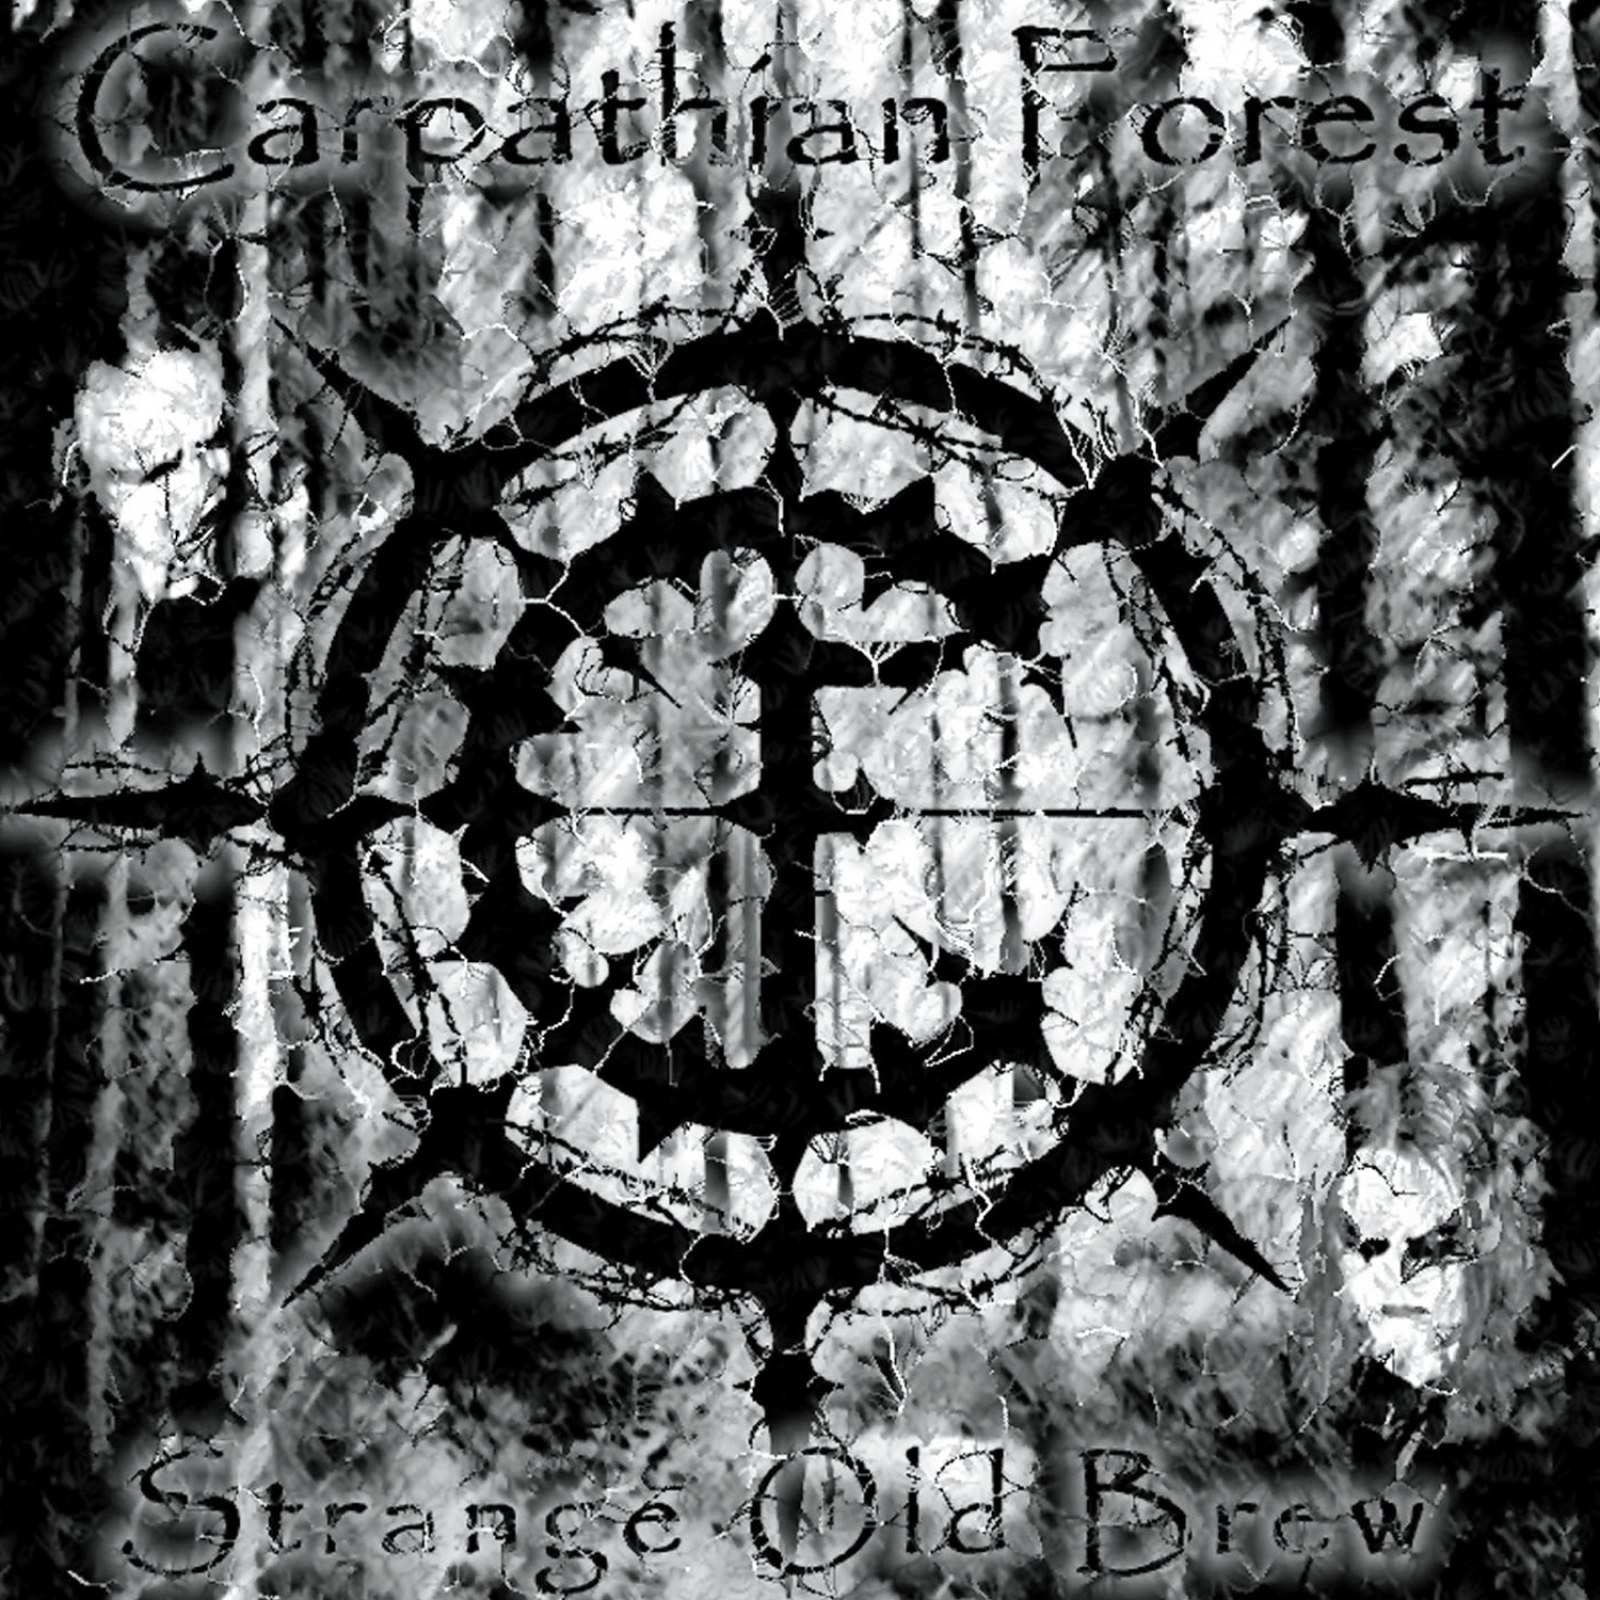 Review for Carpathian Forest - Strange Old Brew